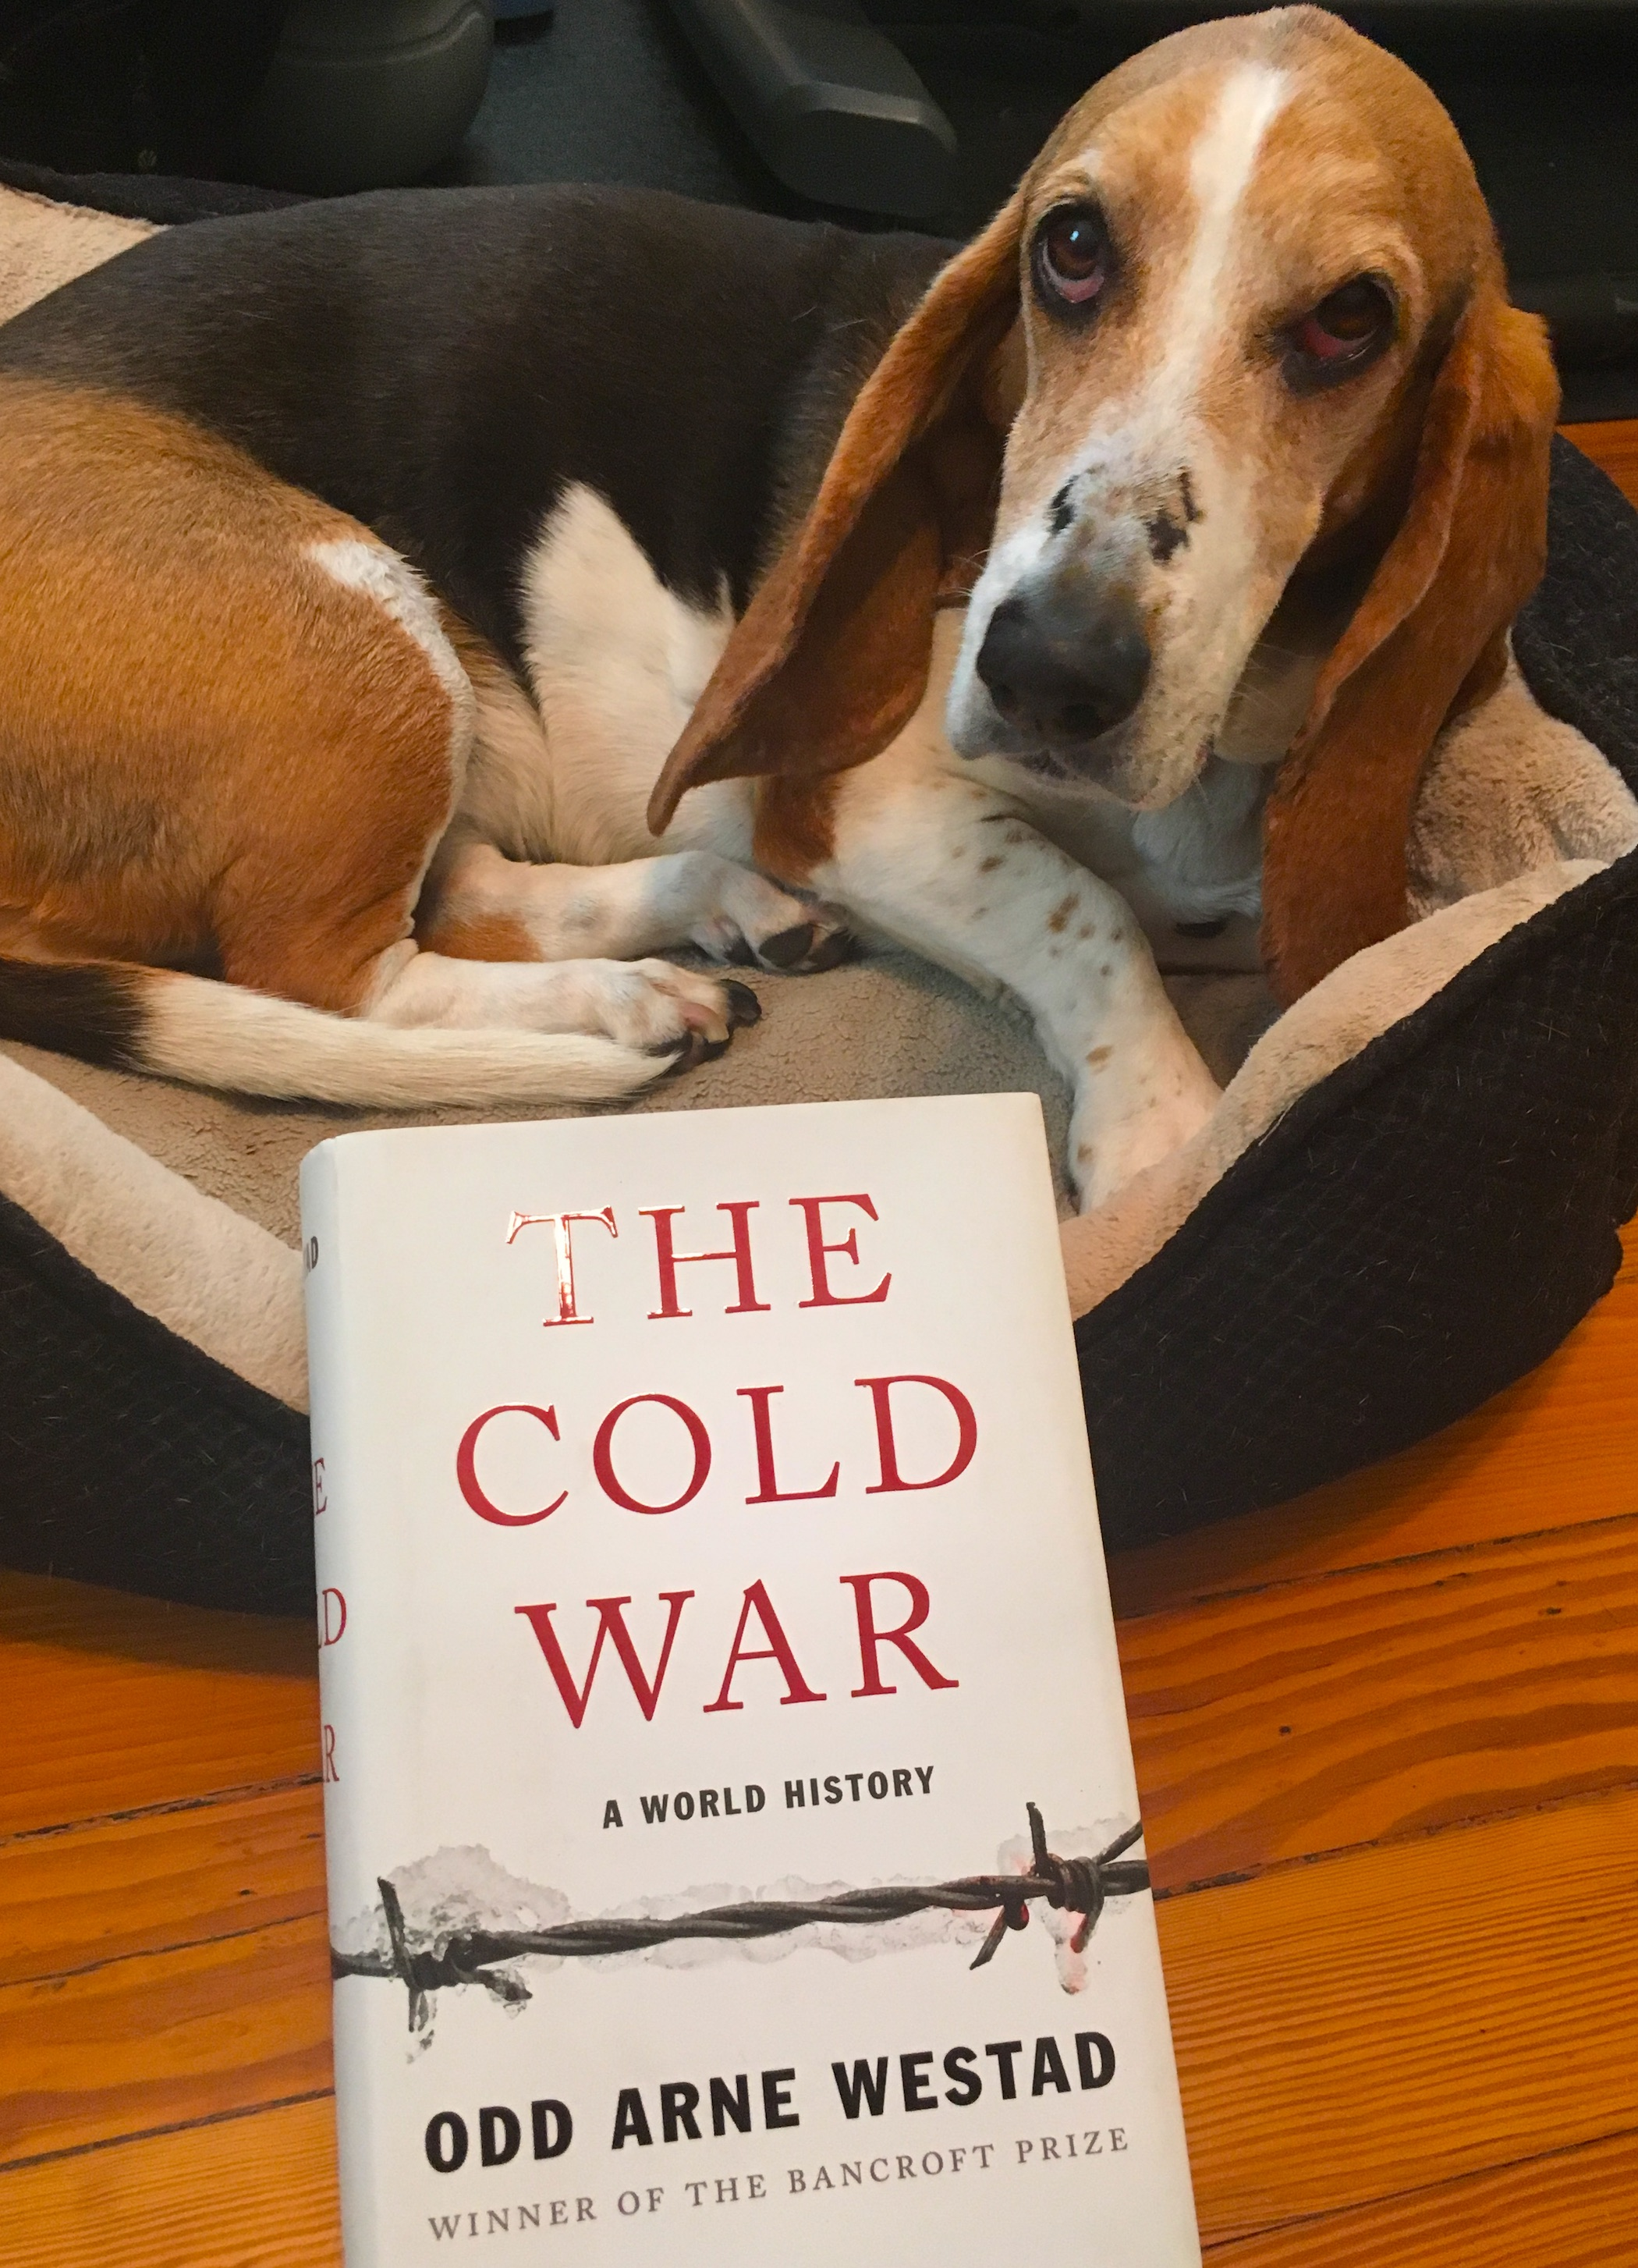 A perfect book for Bassett hounds and history buffs.